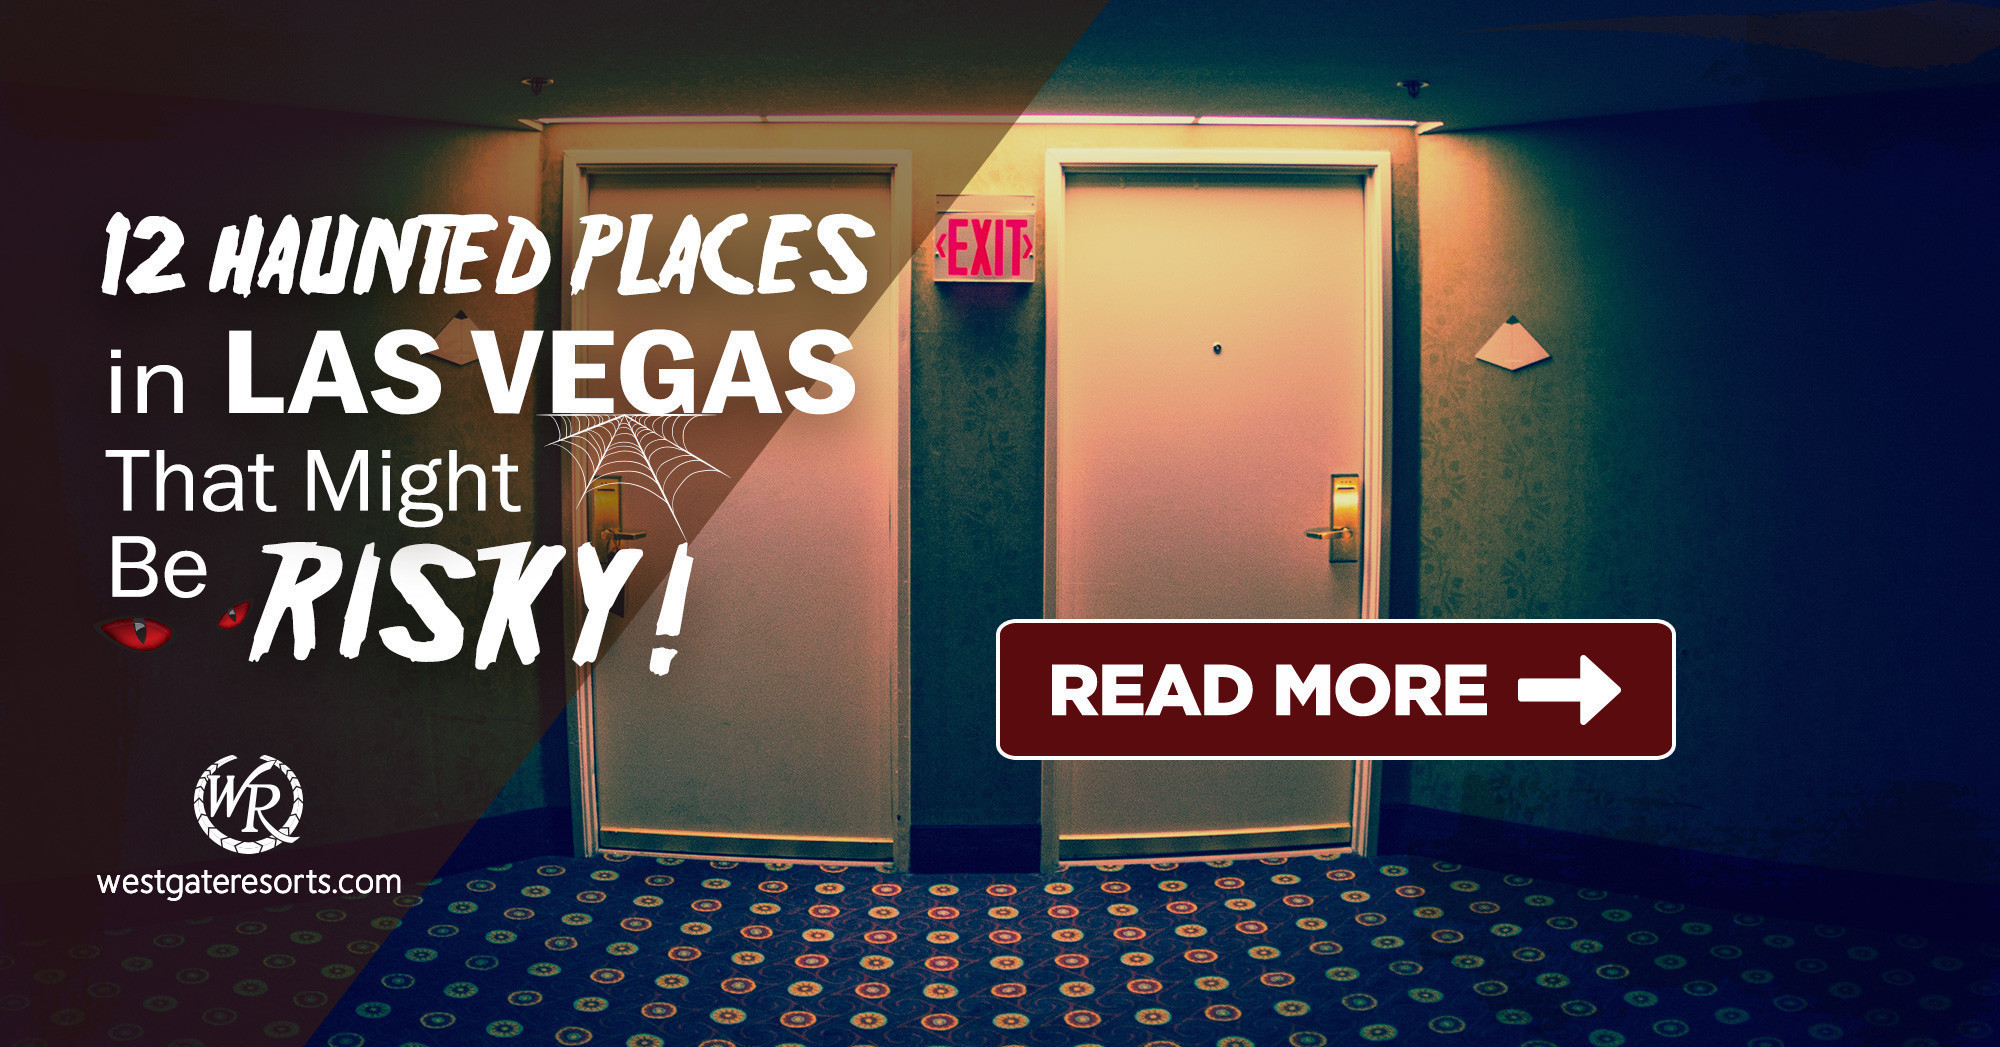 12 Haunted Places in Las Vegas | Westgate Resorts Travel Blog